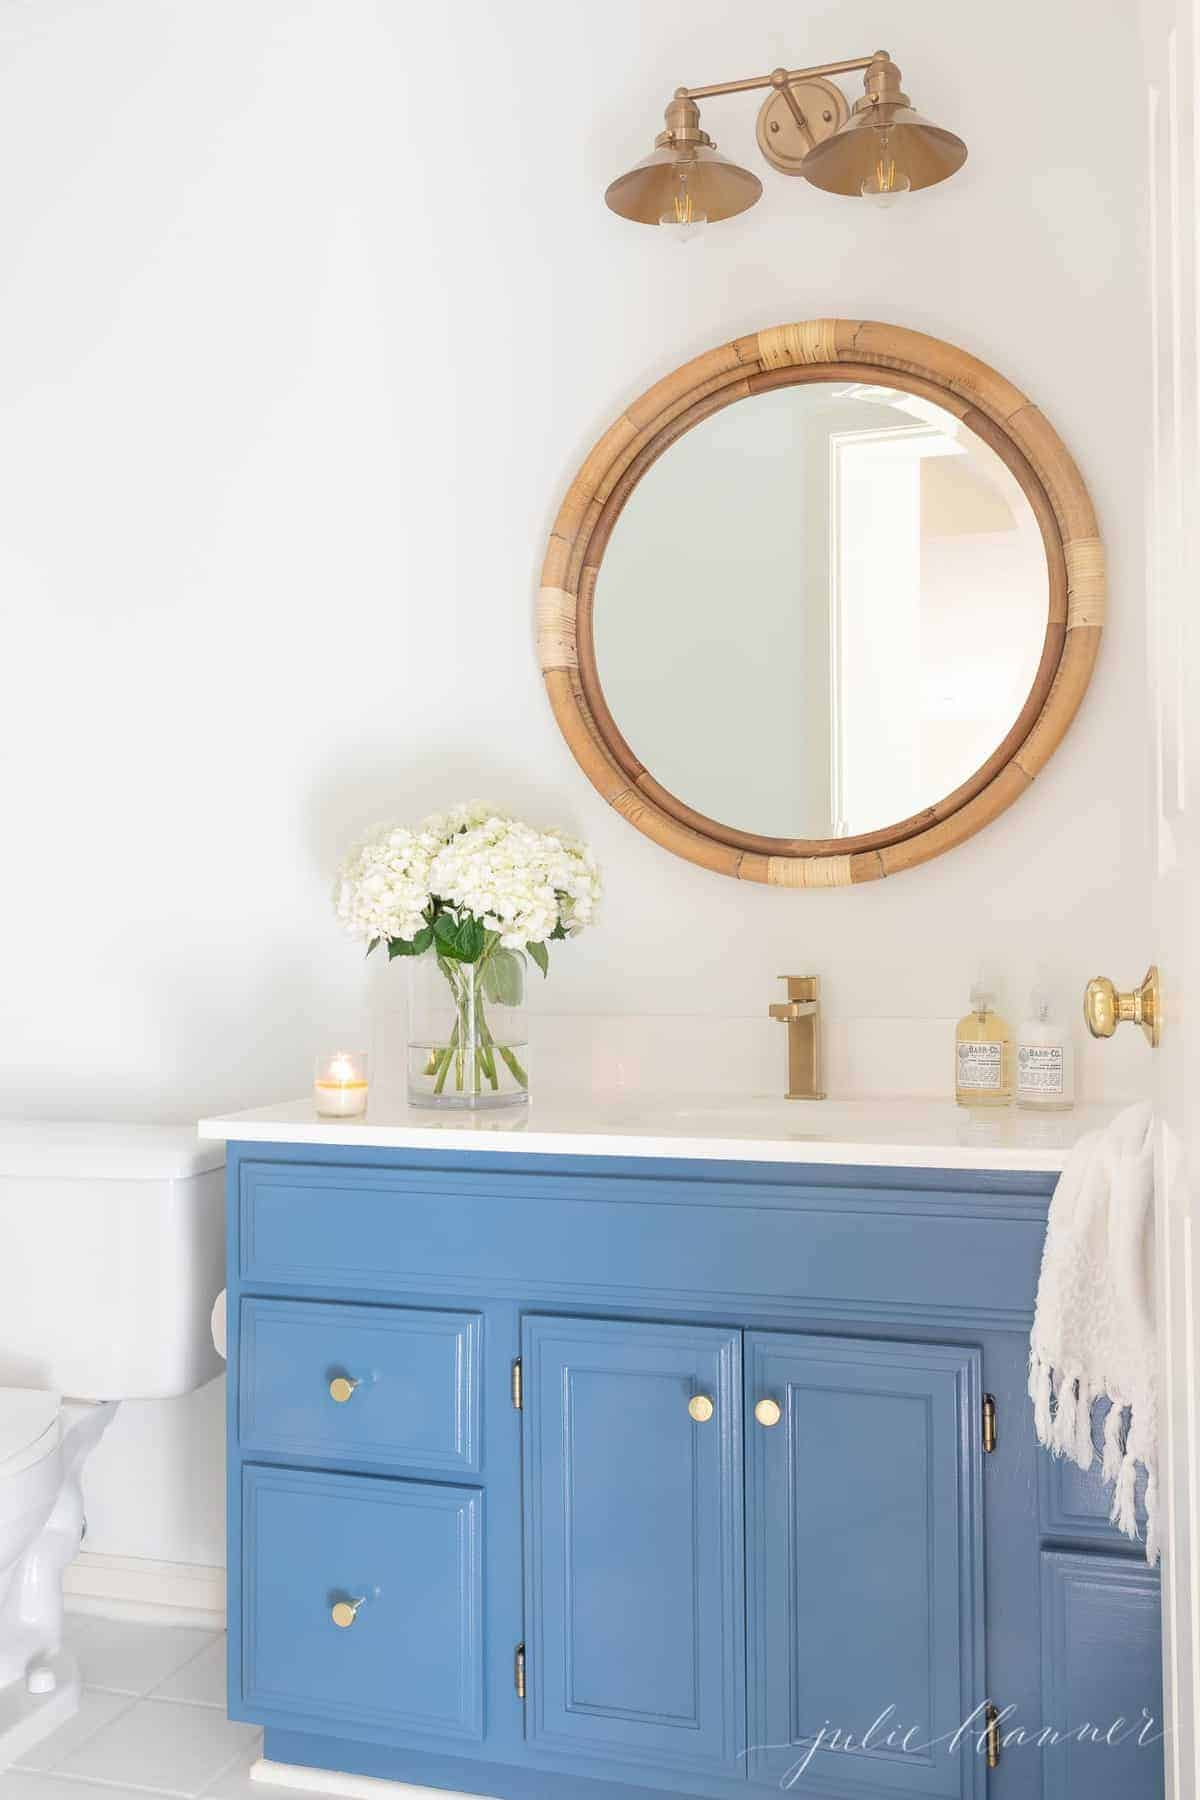 A blue and white bathroom with brass bathroom light fixtures.